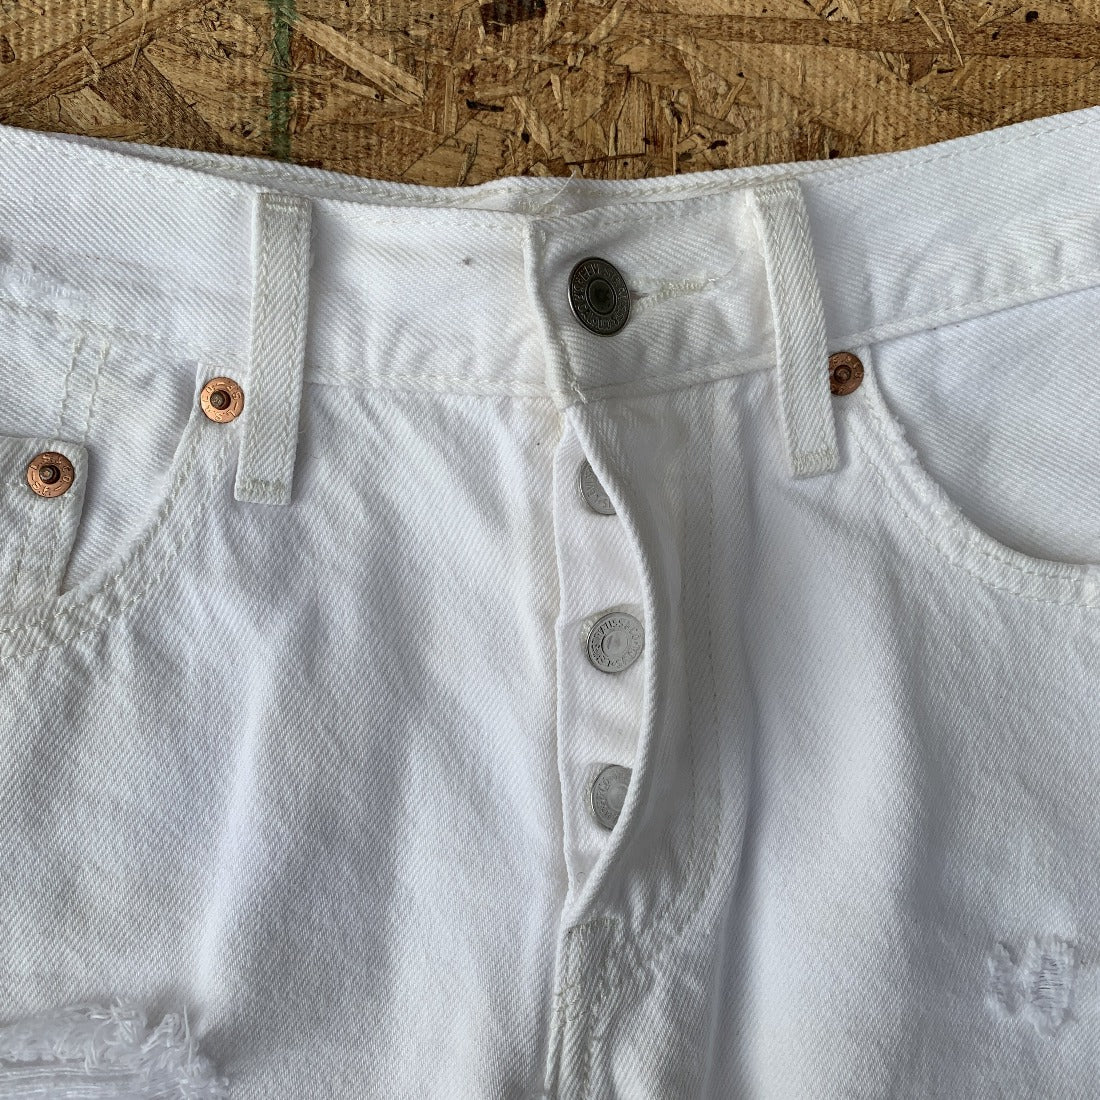 Levi's 501 White Denim Cutoff Shorts | 28